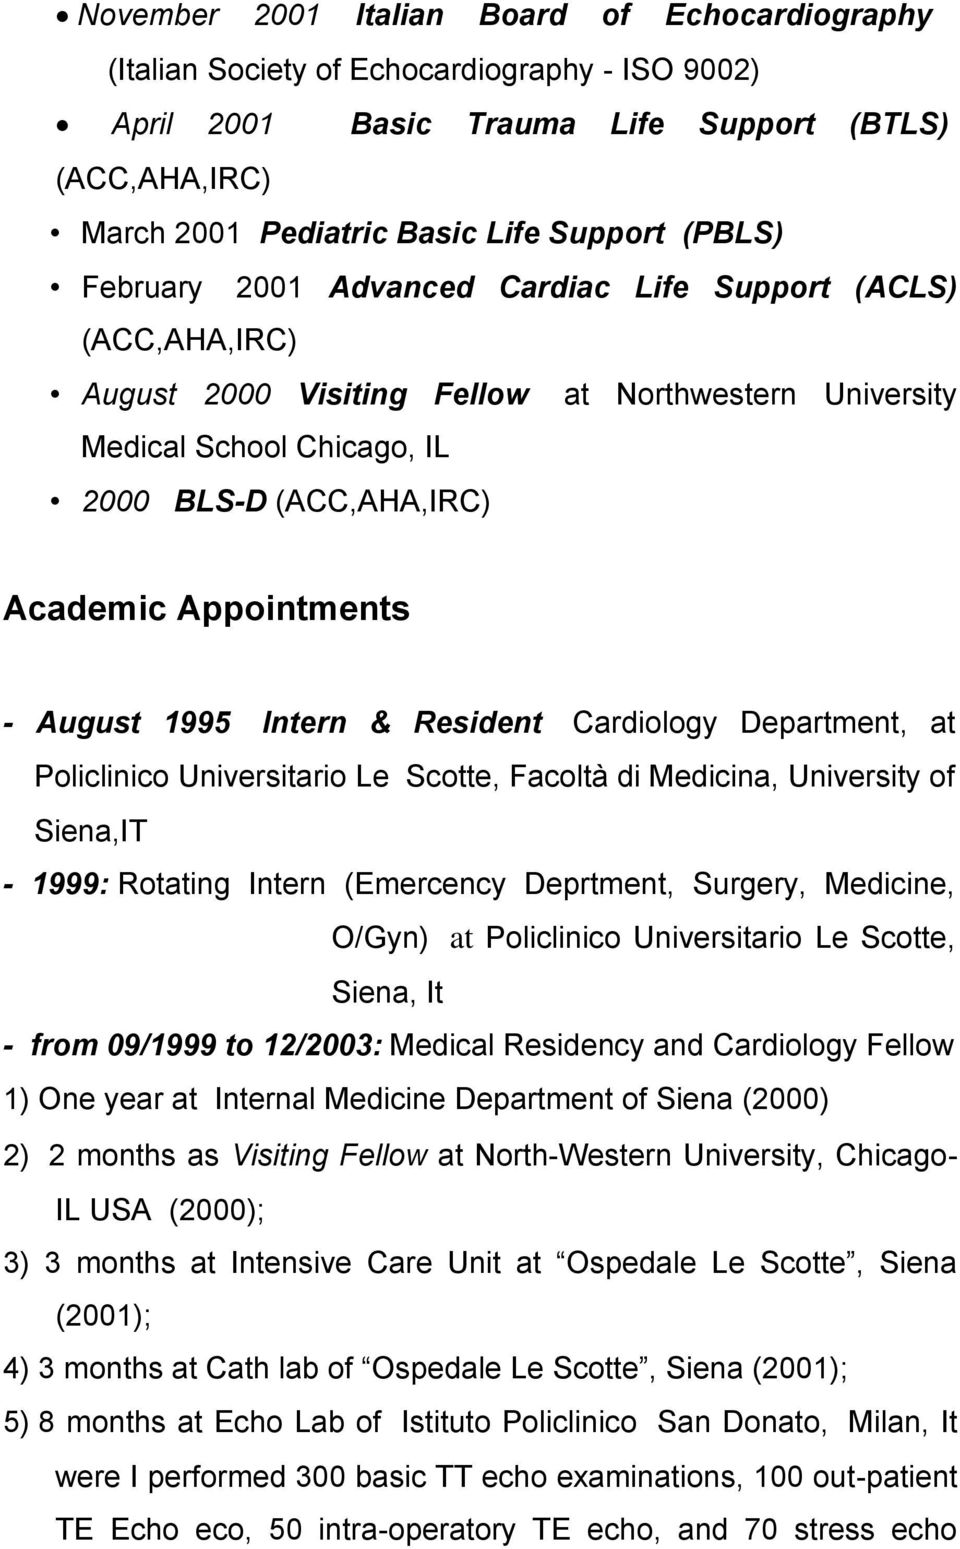 Appointments - August 1995 Intern & Resident Cardiology Department, at Policlinico Universitario Le Scotte, Facoltà di Medicina, University of Siena,IT - 1999: Rotating Intern (Emercency Deprtment,